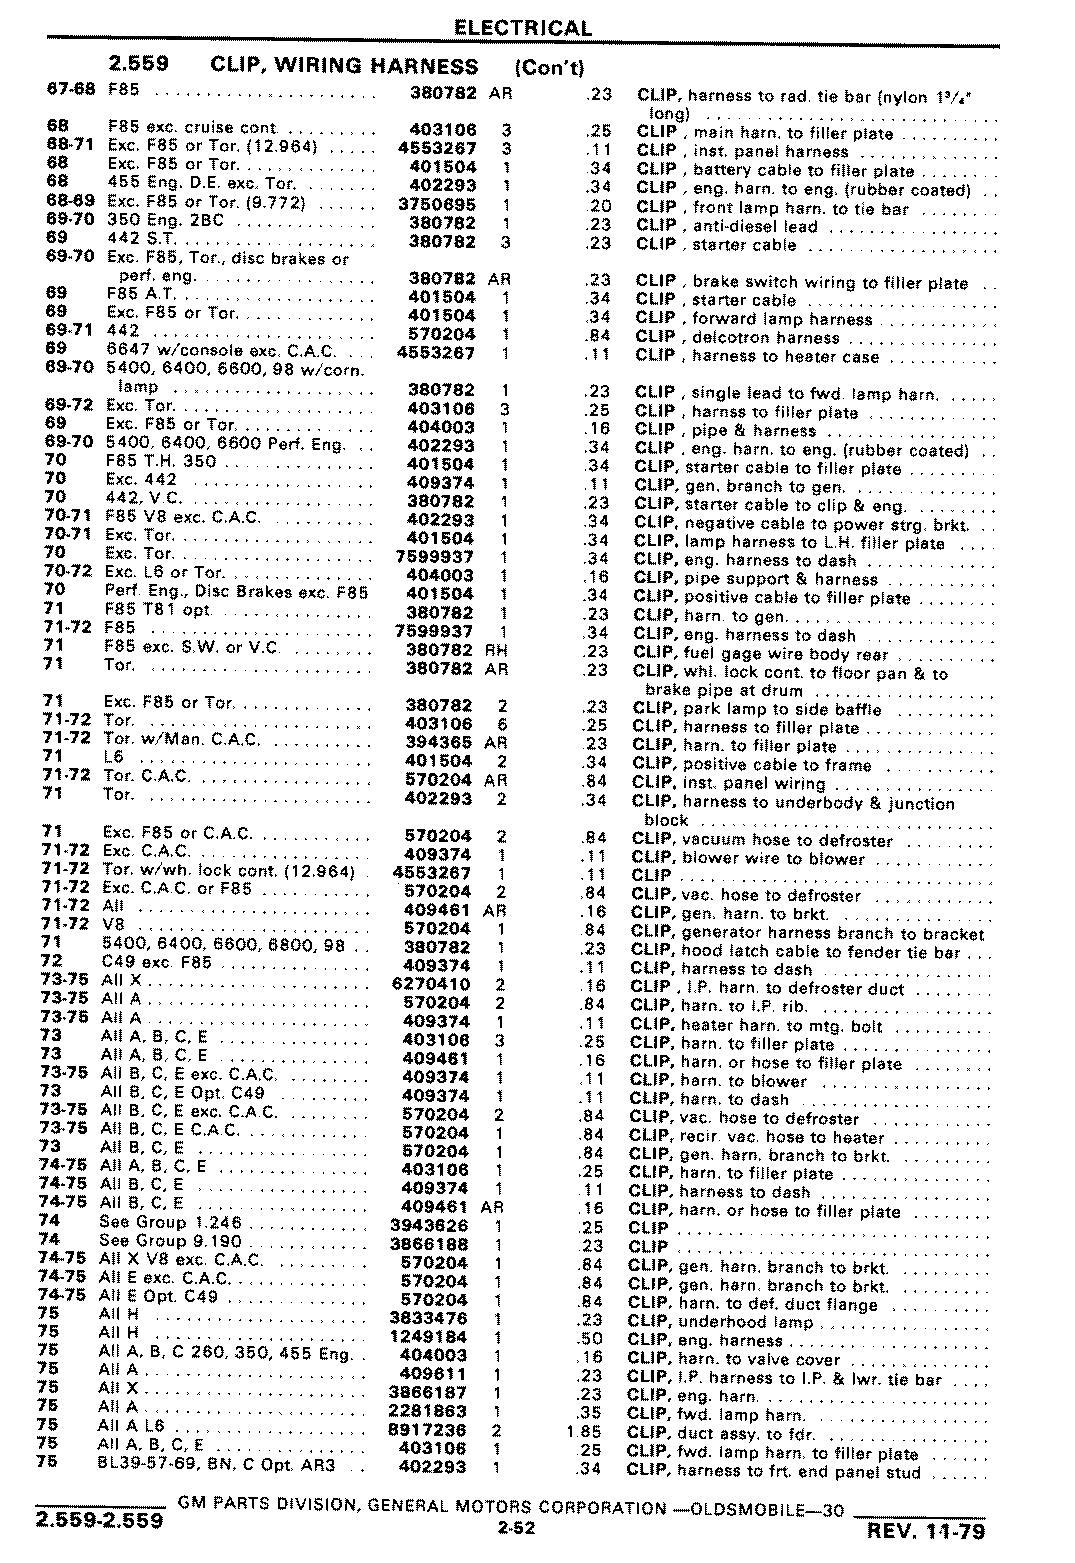 Gmpartswiki Chassis And Body Parts Catalog Pa 30 November 1979 Rib Harness Clip Wiring